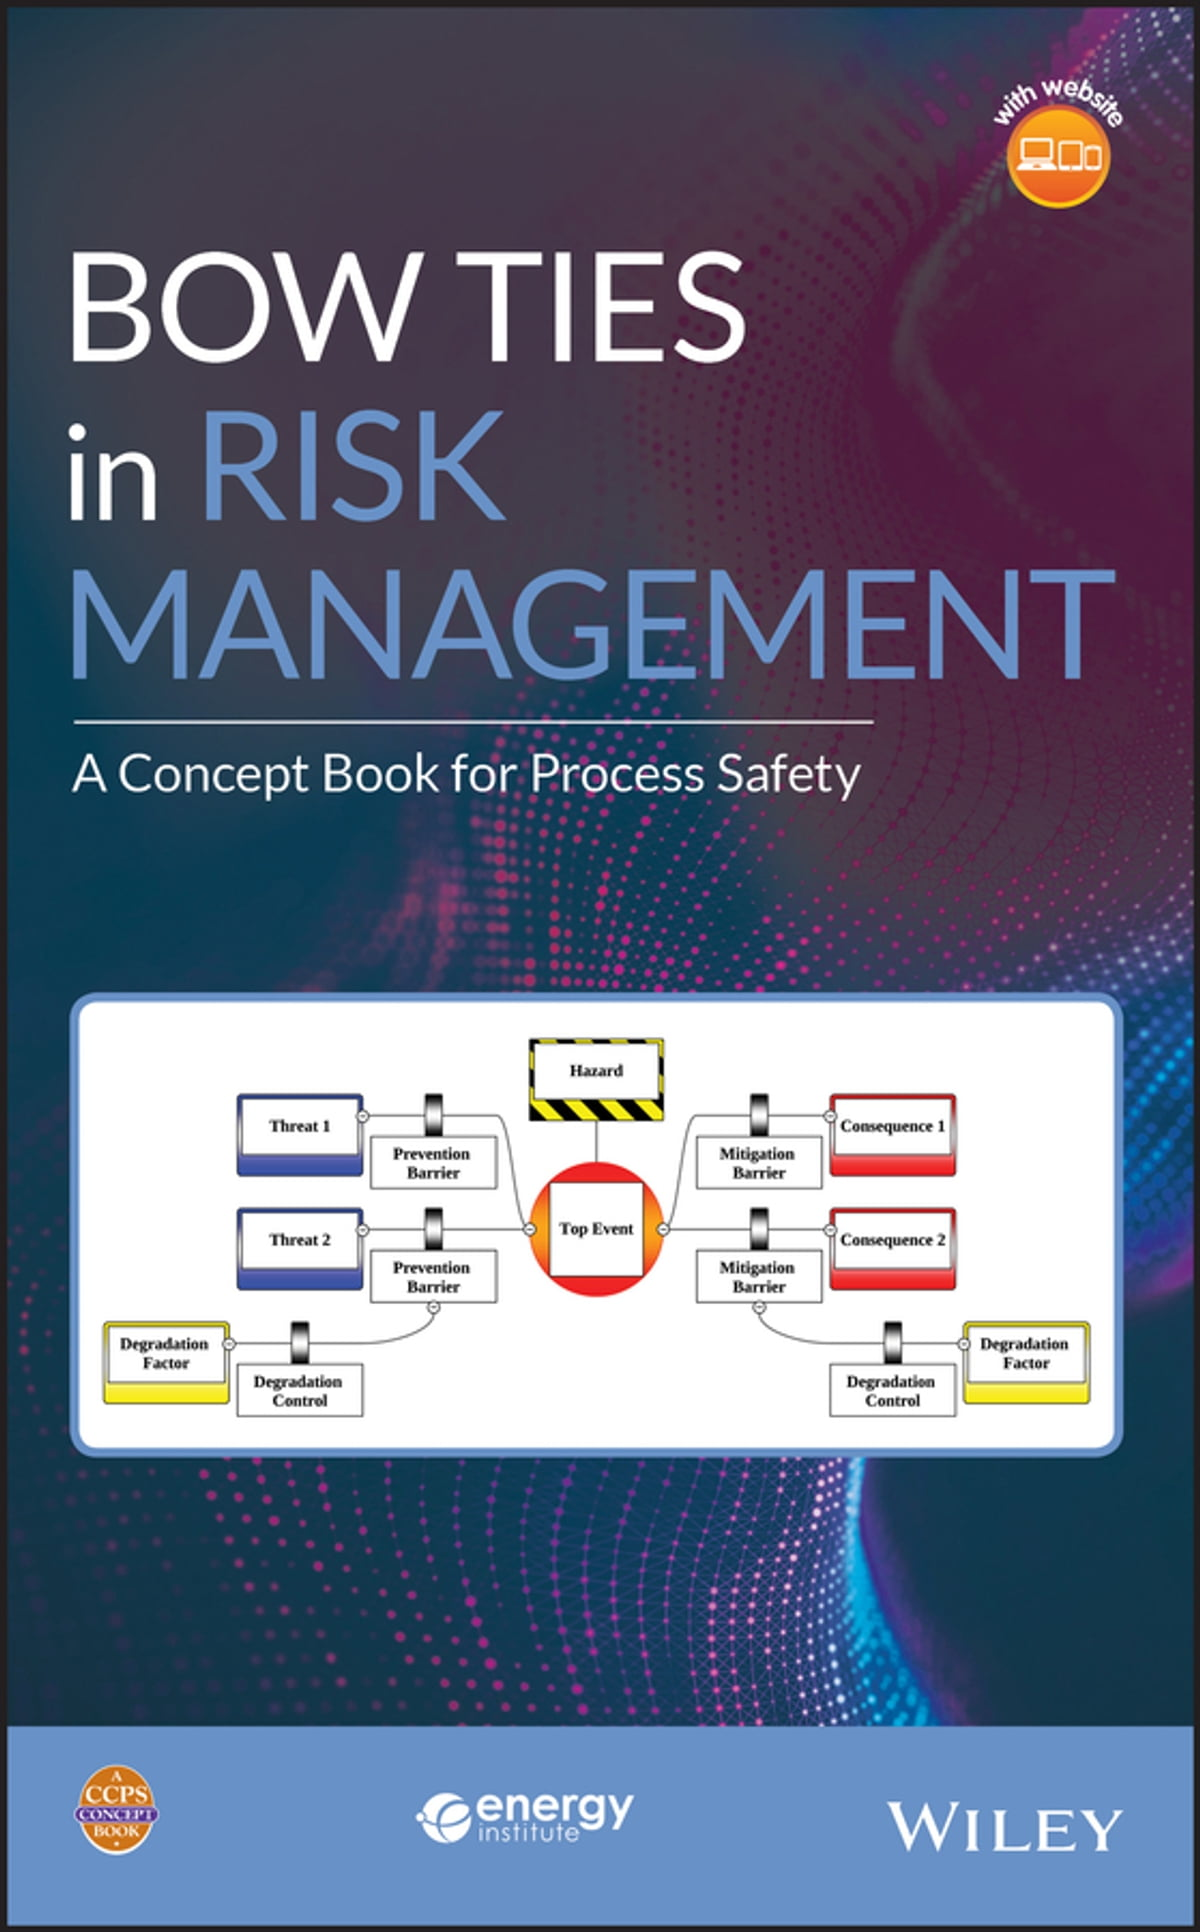 hight resolution of bow ties in risk management ebook by ccps center for chemical process safety 9781119490340 rakuten kobo